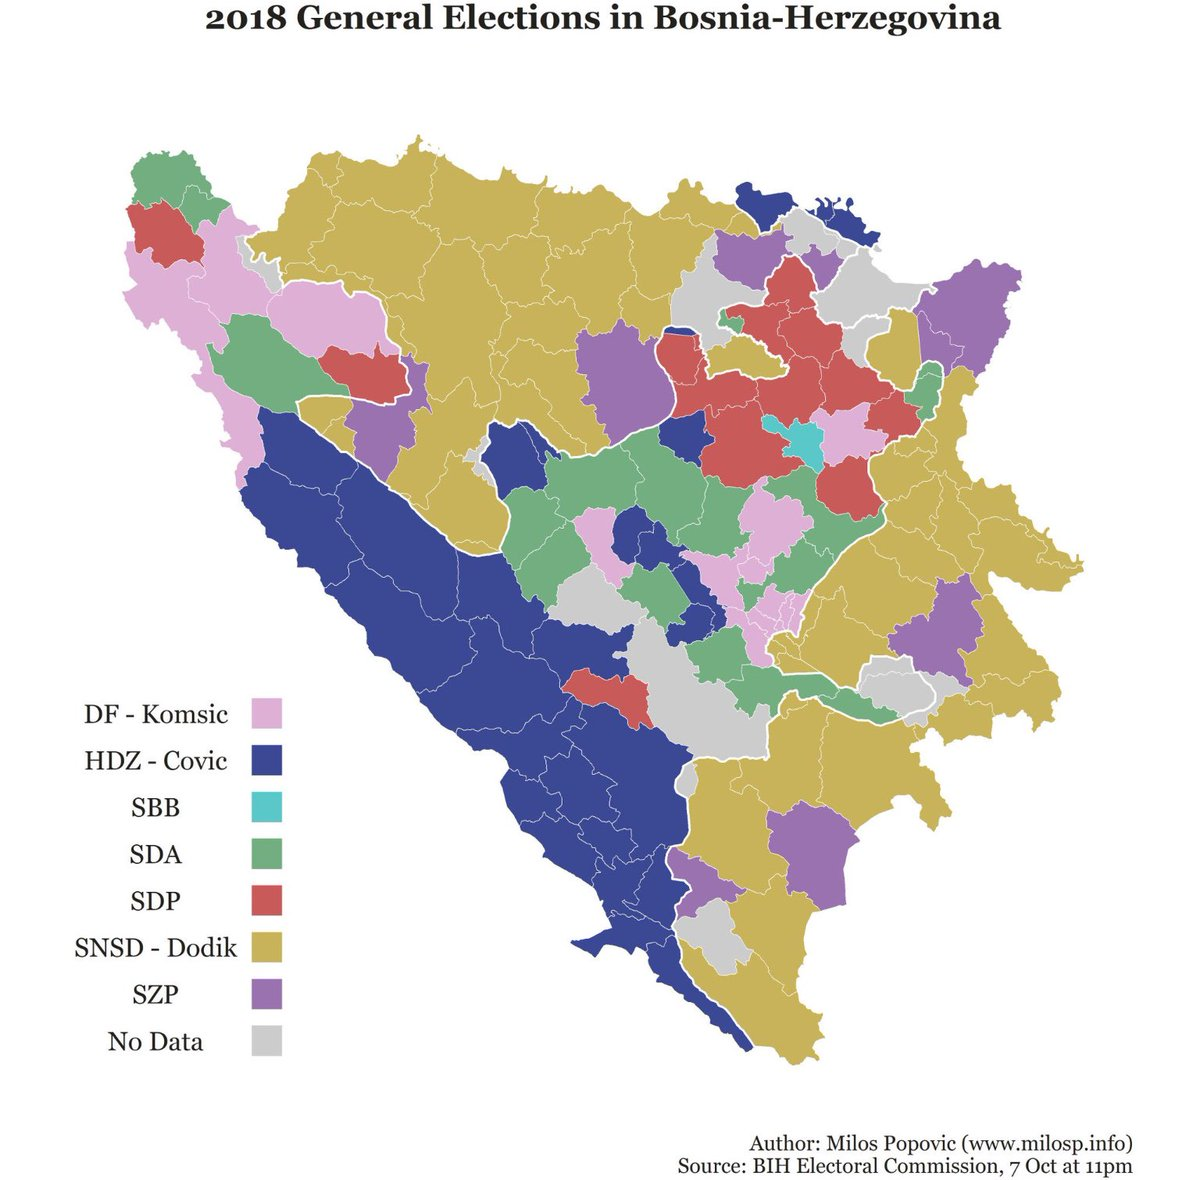 The patterns in the elections in Bosnia look very familiar. You can see some problems down the line.